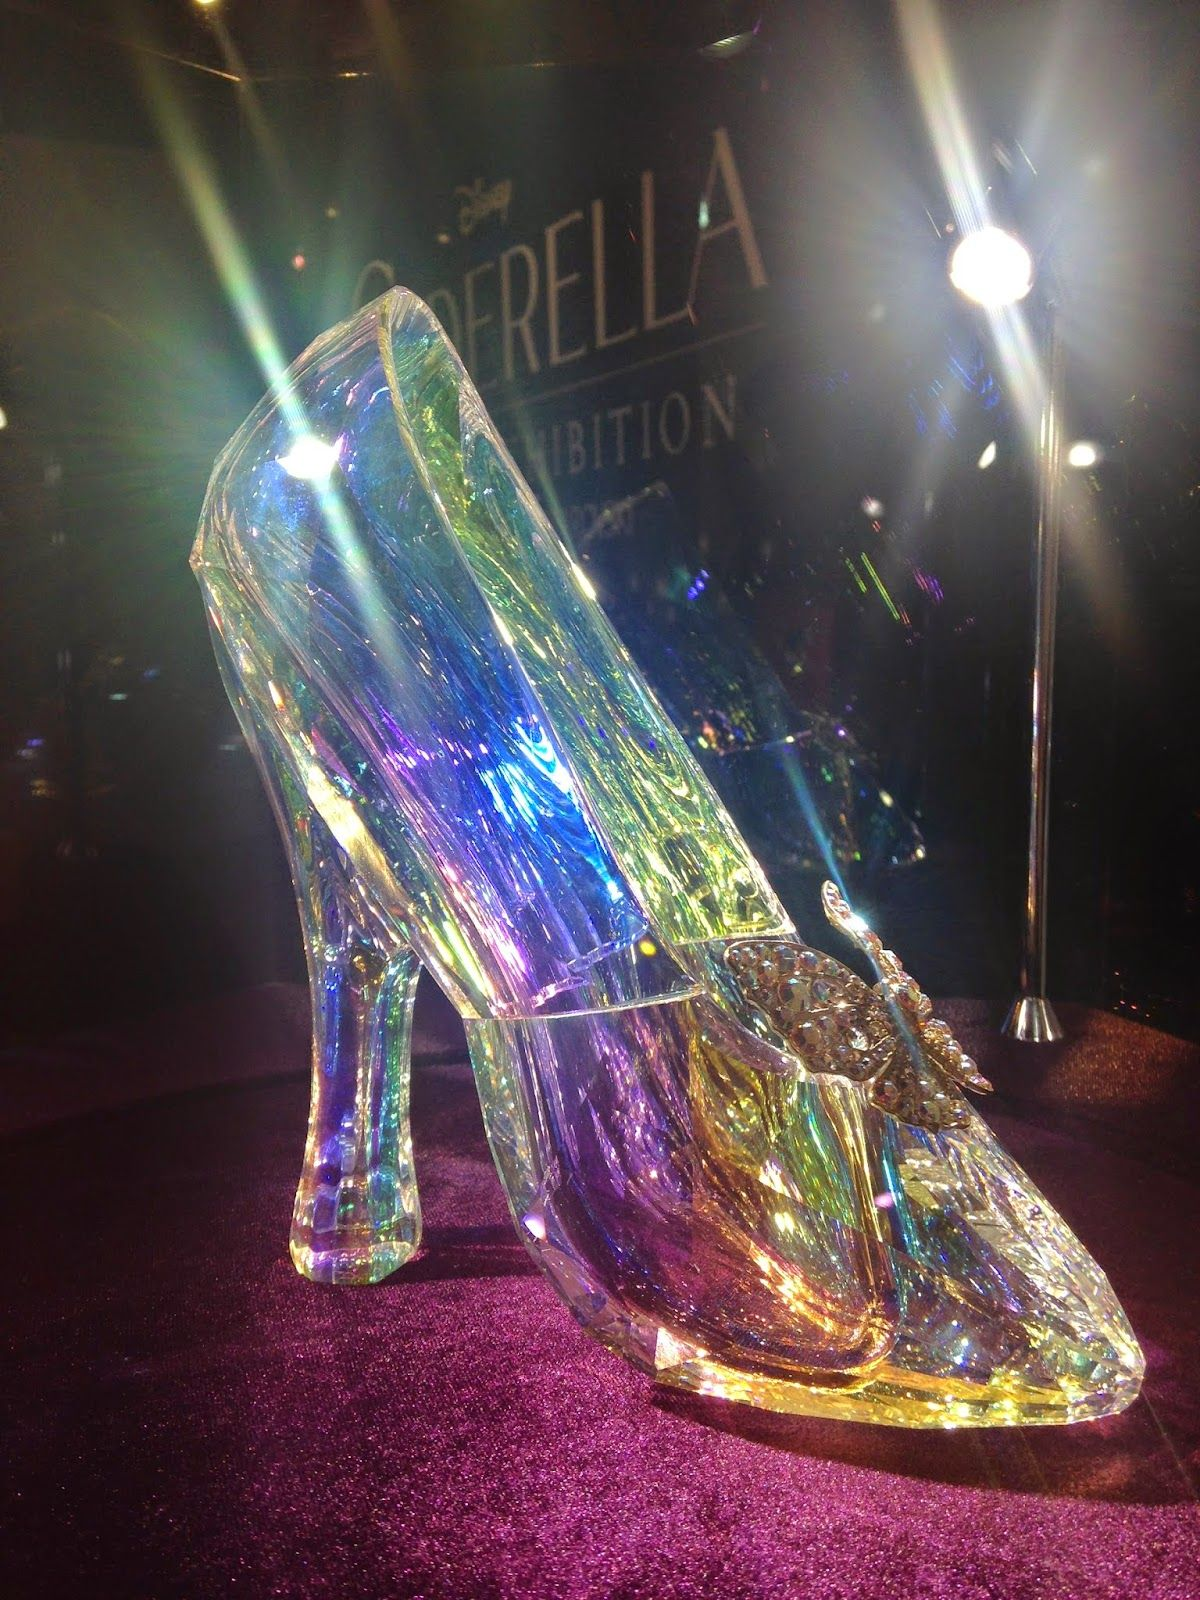 caf7ece03 The real 'glass slipper' from Disney's Cinderella!! The shoe is real and  made out of swarovski crystal!